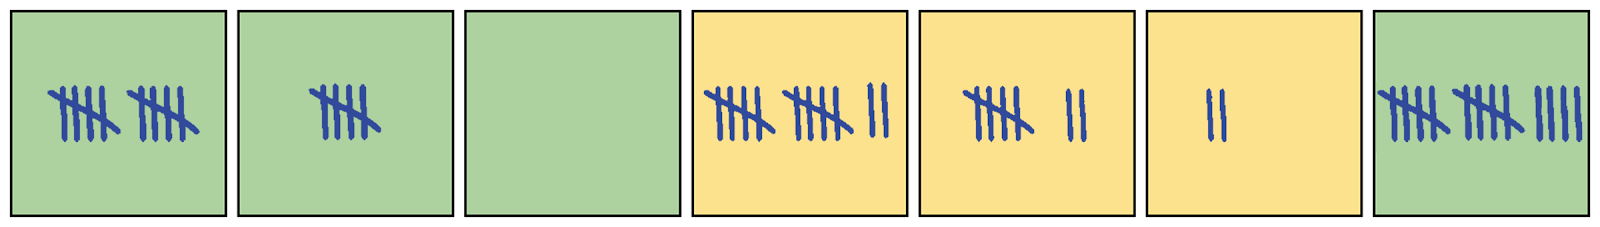 First, a green square with 2 sets of 5 tally marks. Next, a green square with 1 set of 5 tally marks. Then, an empty green square. Next, a yellow square with 2 sets of 5 tally marks + 2 singles. Next, a yellow square with 1 set of 5 tally marks + 2 singles. Then, a yellow square with 2 single tally marks. Last, a green square with 2 sets of 5 tally marks + 4 singles.